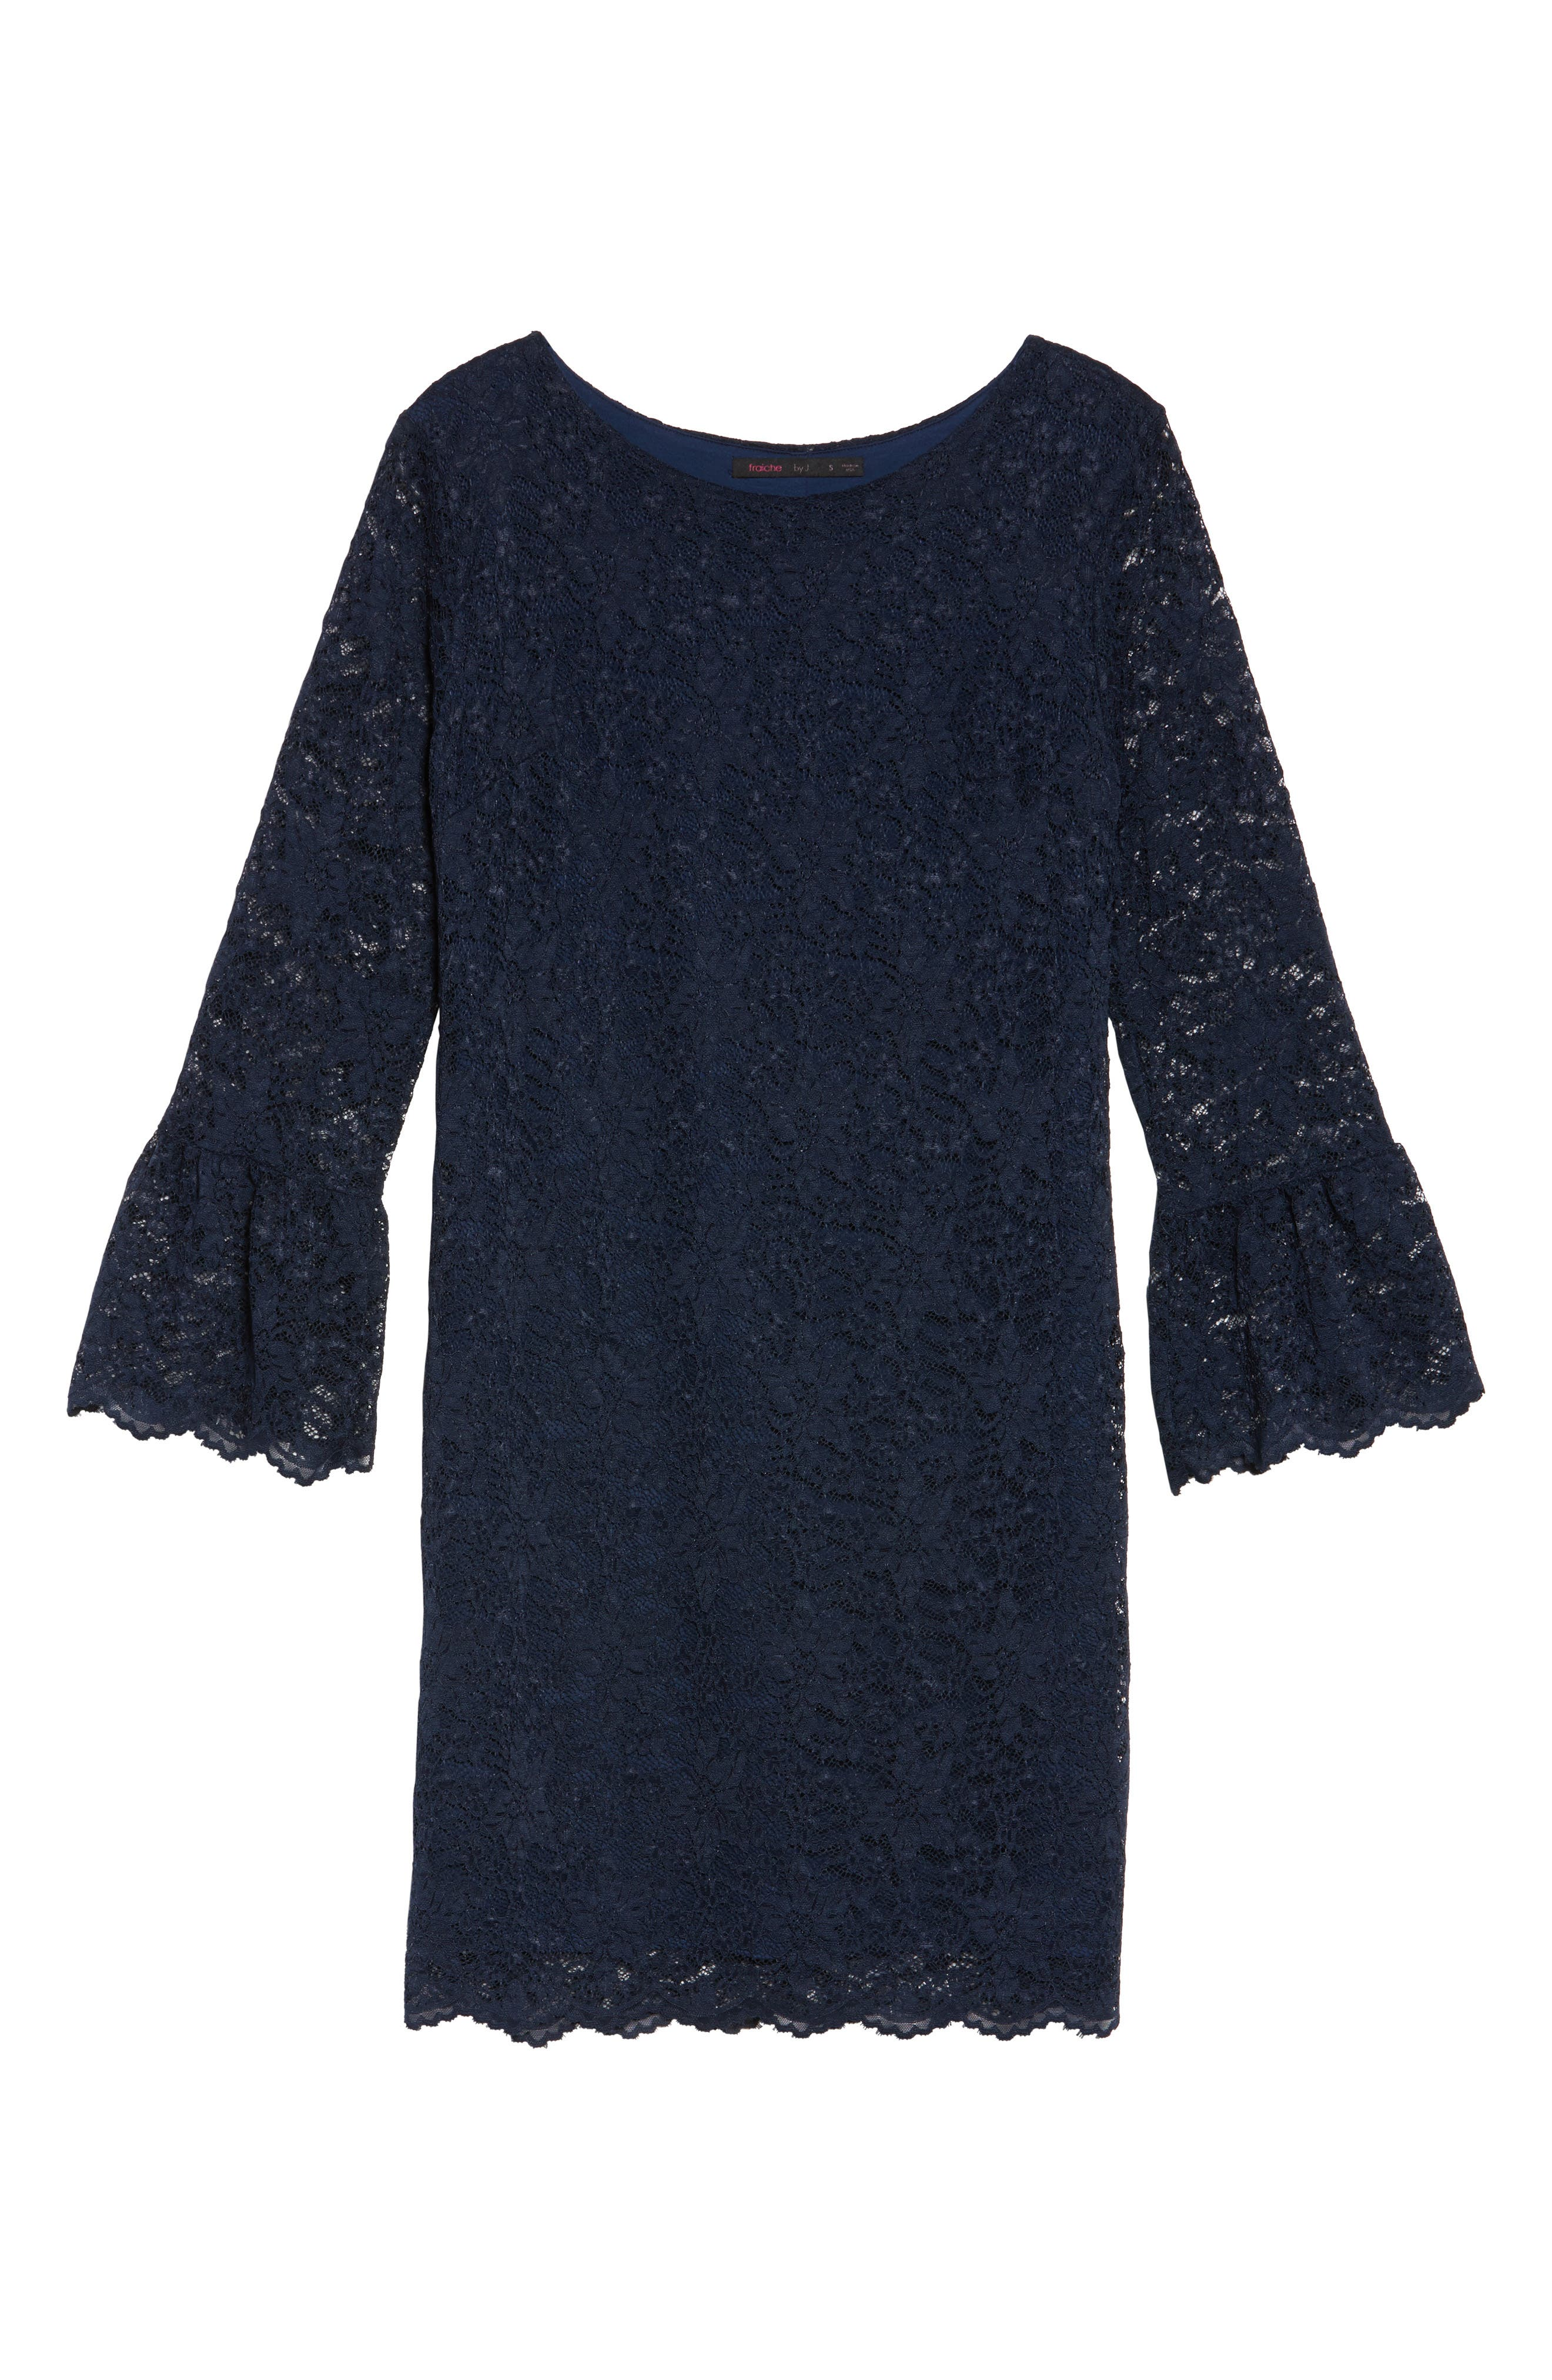 Lace Bell Sleeve Shift Dress,                             Alternate thumbnail 6, color,                             410